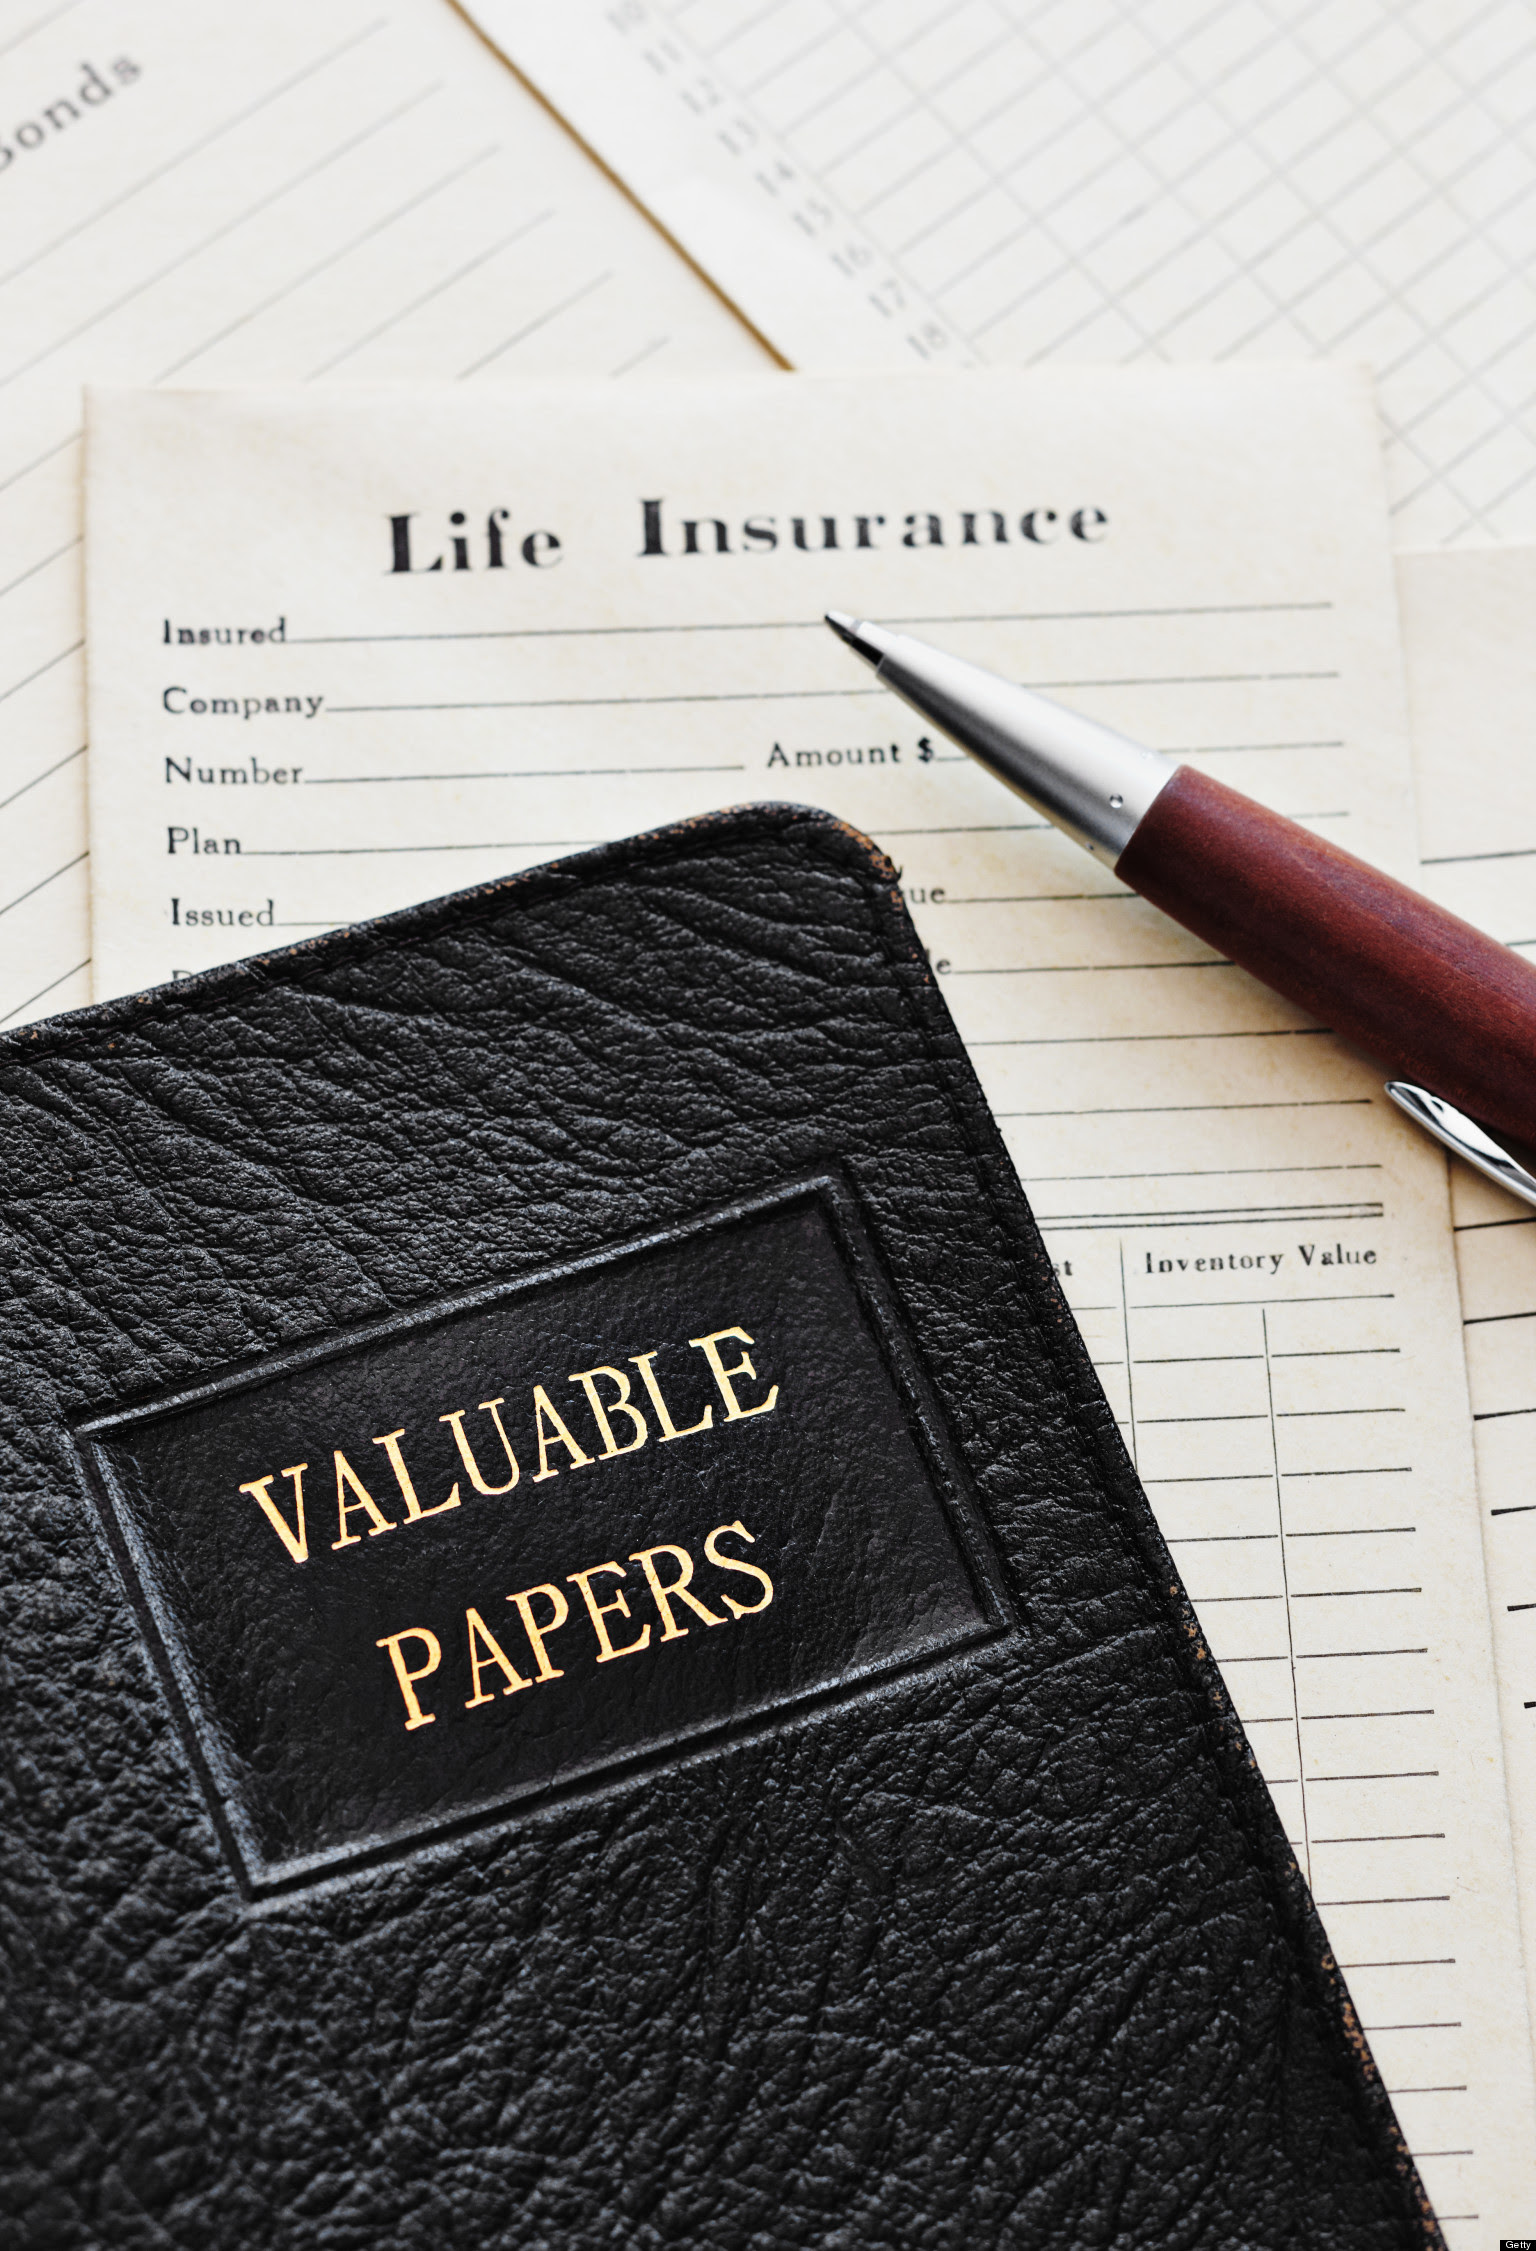 How to Find Lost Life Insurance Policies | HuffPost